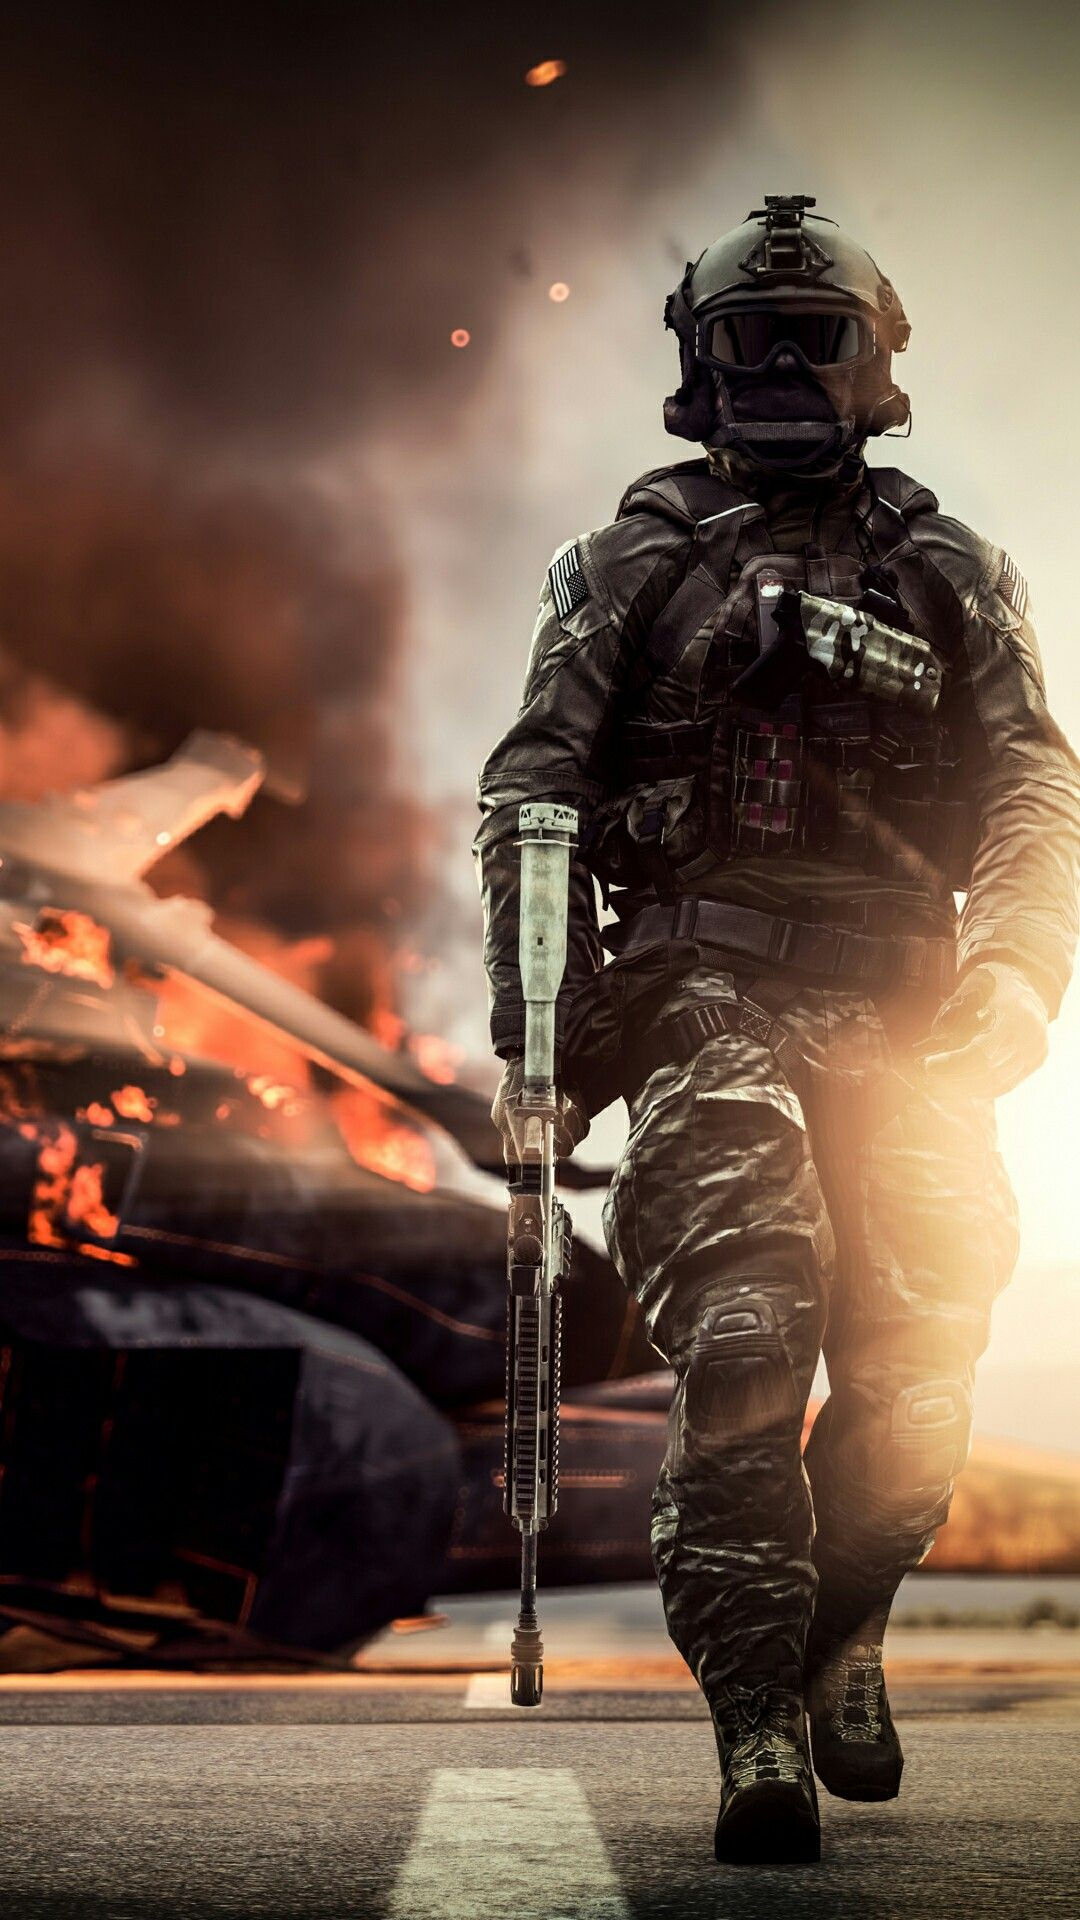 Pin By Ivan Valenzuela Nino On Game Wallpaper Army Wallpaper Indian Army Wallpapers Military Wallpaper